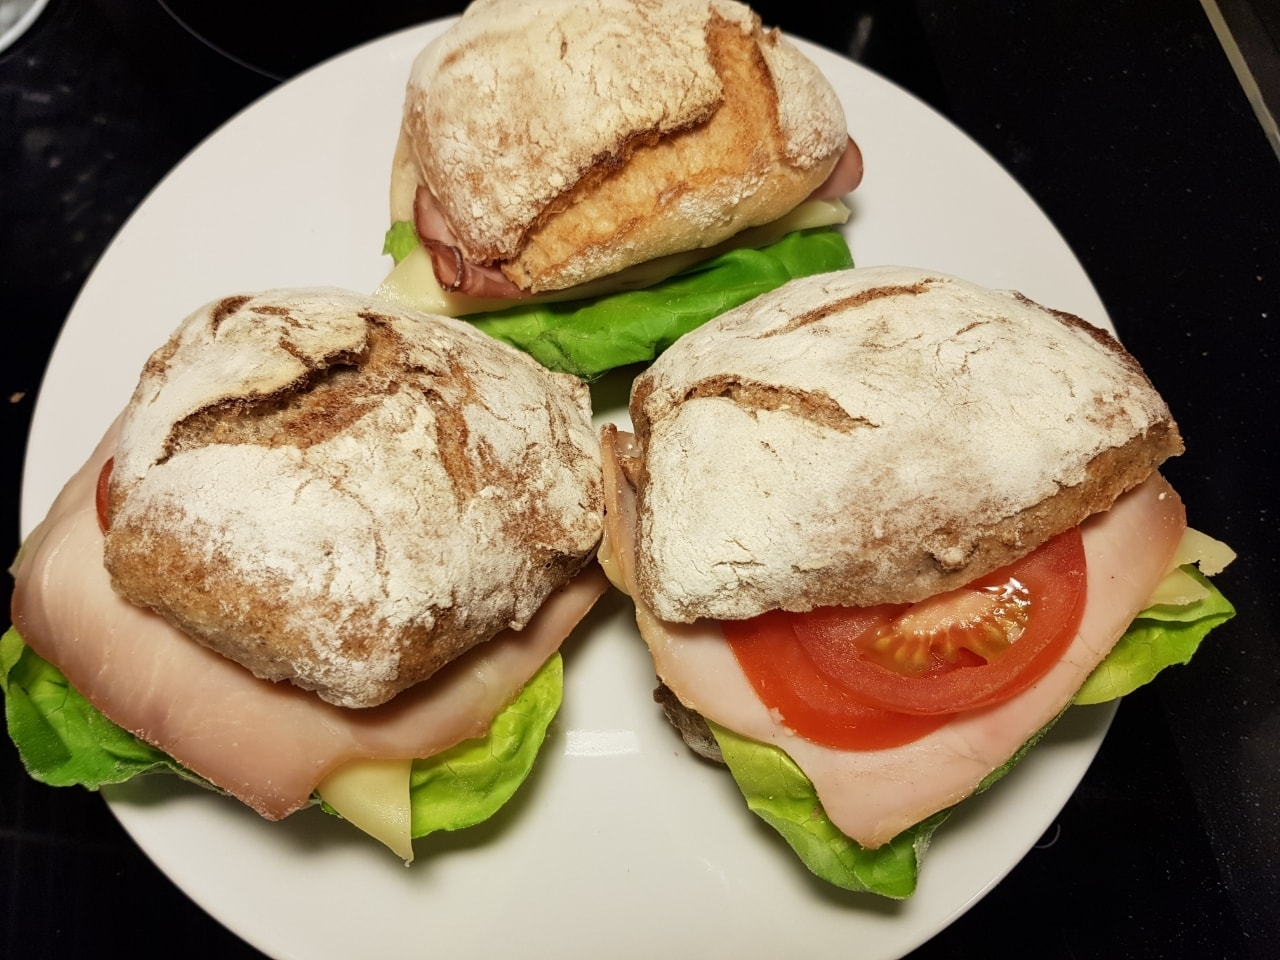 Cheese and ham sandwiches (3)